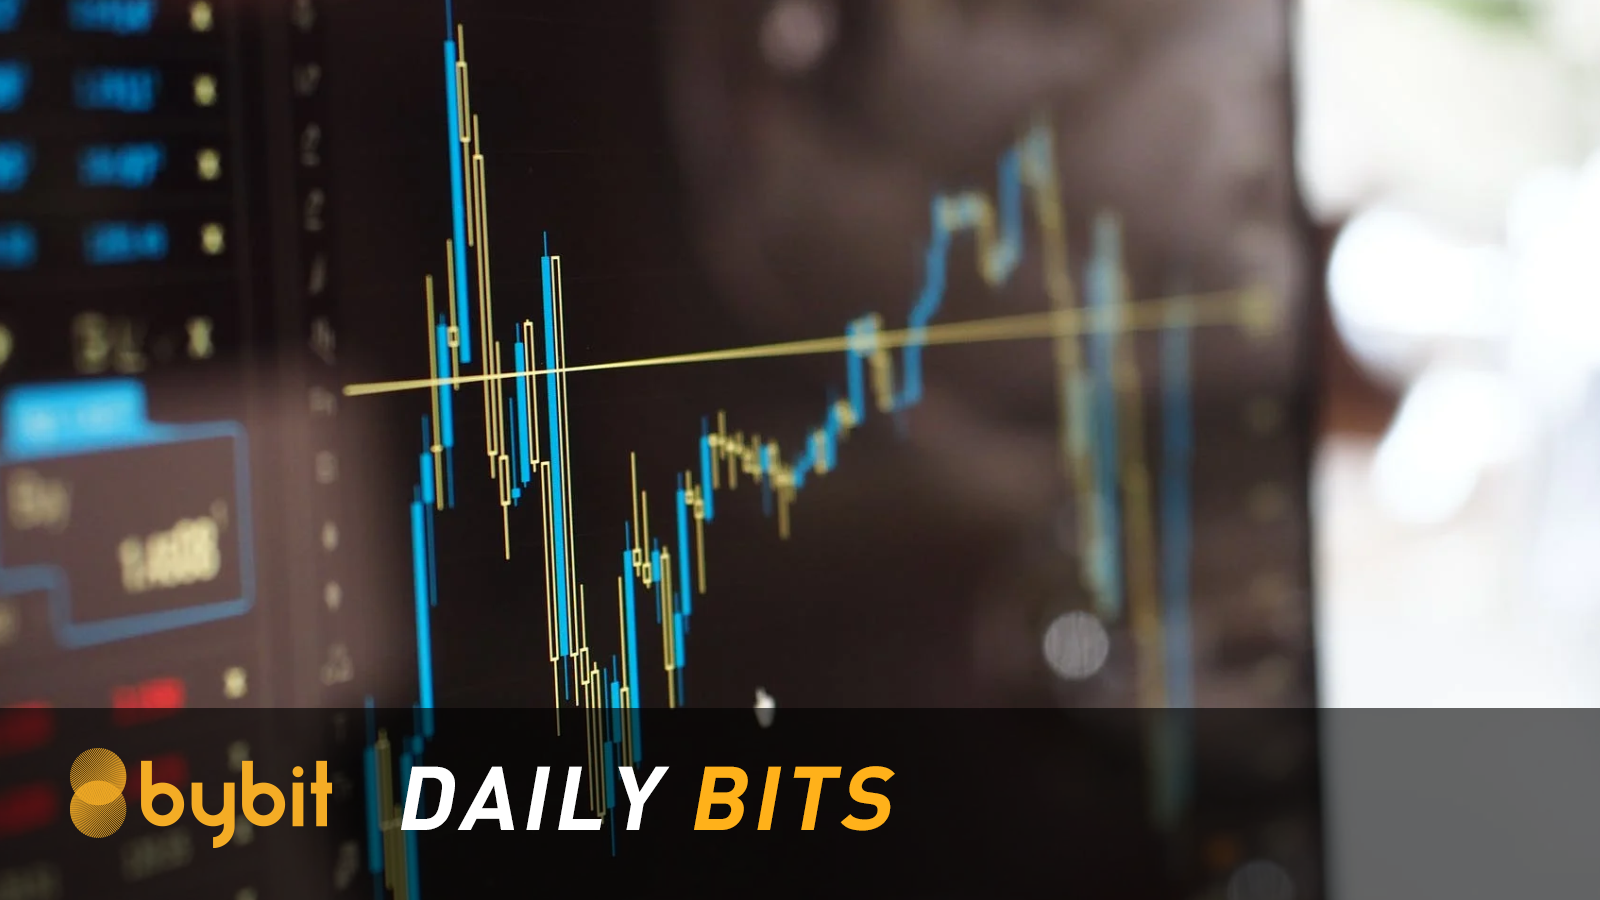 Daily Bits - relentless pursuit